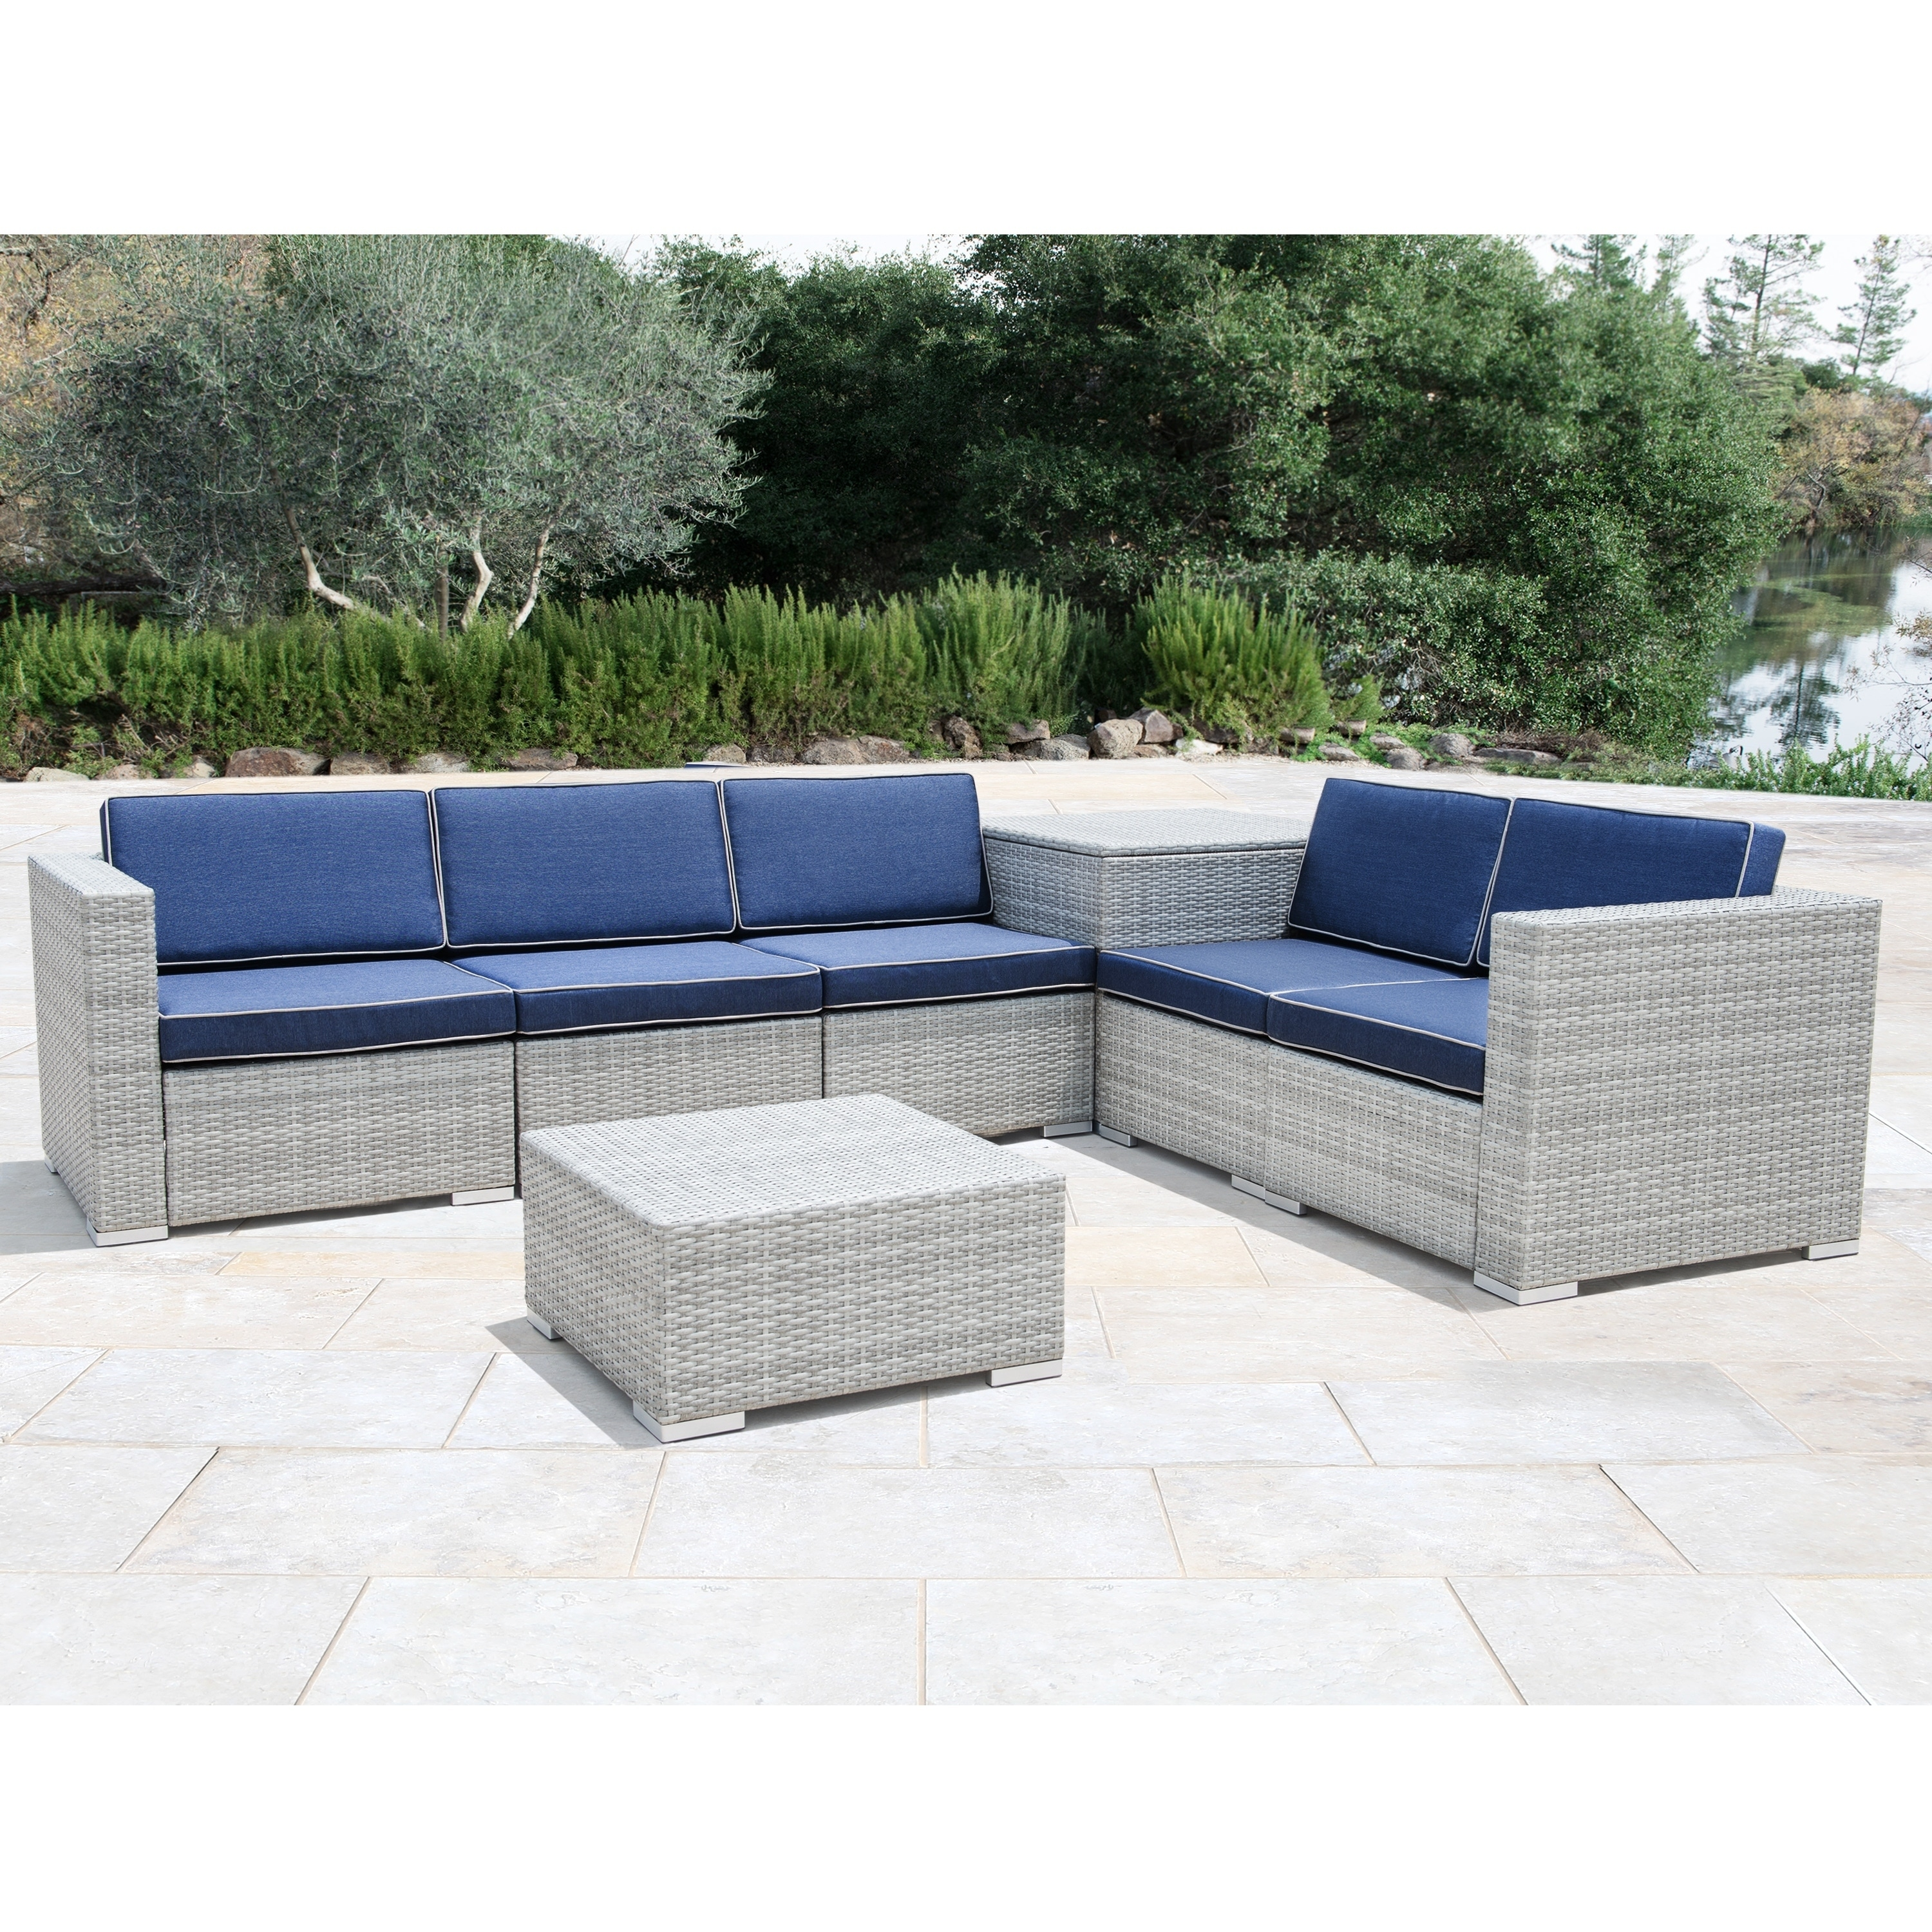 Shop corvus bologna 7 piece grey wicker patio furniture set with storage box on sale free shipping today overstock 20959943